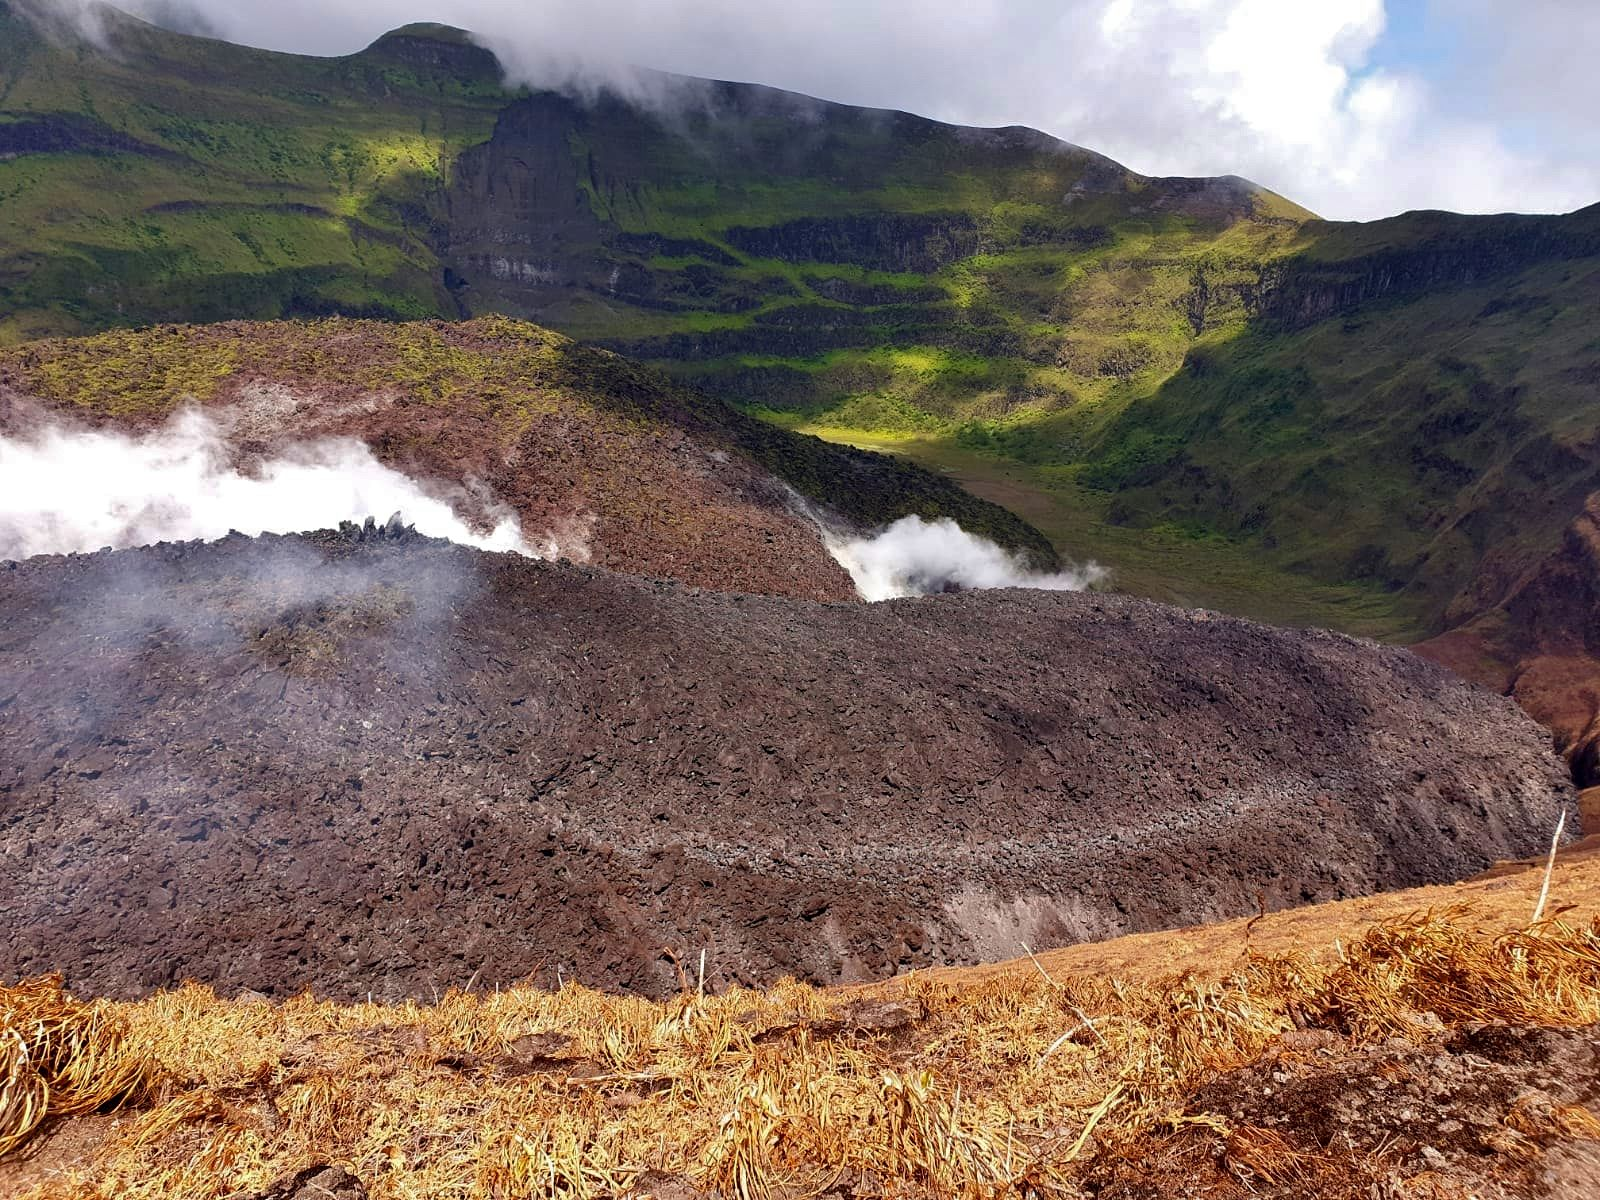 Soufriere of St. Vincent - partial view of the new lava dome on 23.03.2021 - photo NEMO